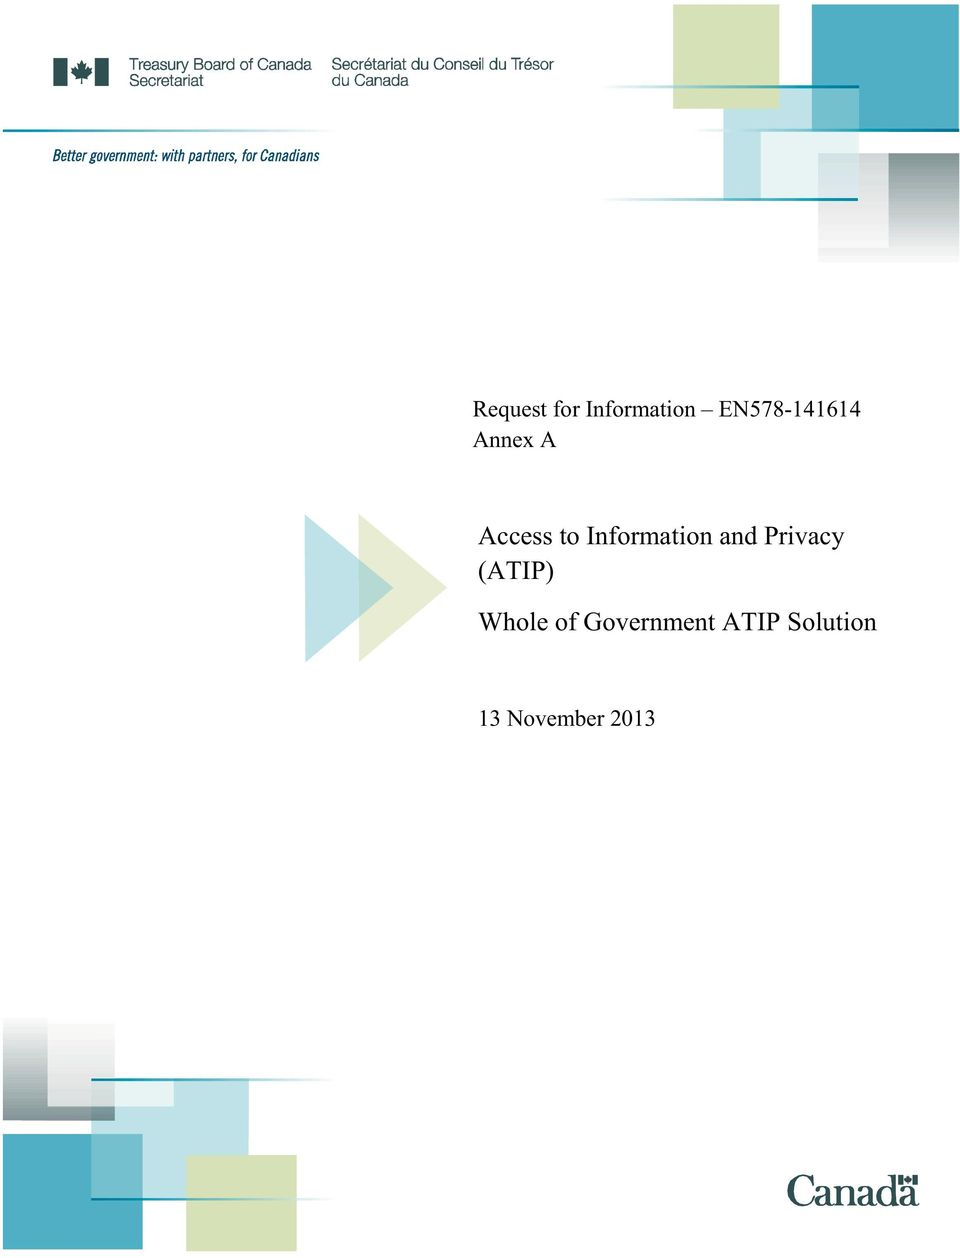 Information and Privacy (ATIP)